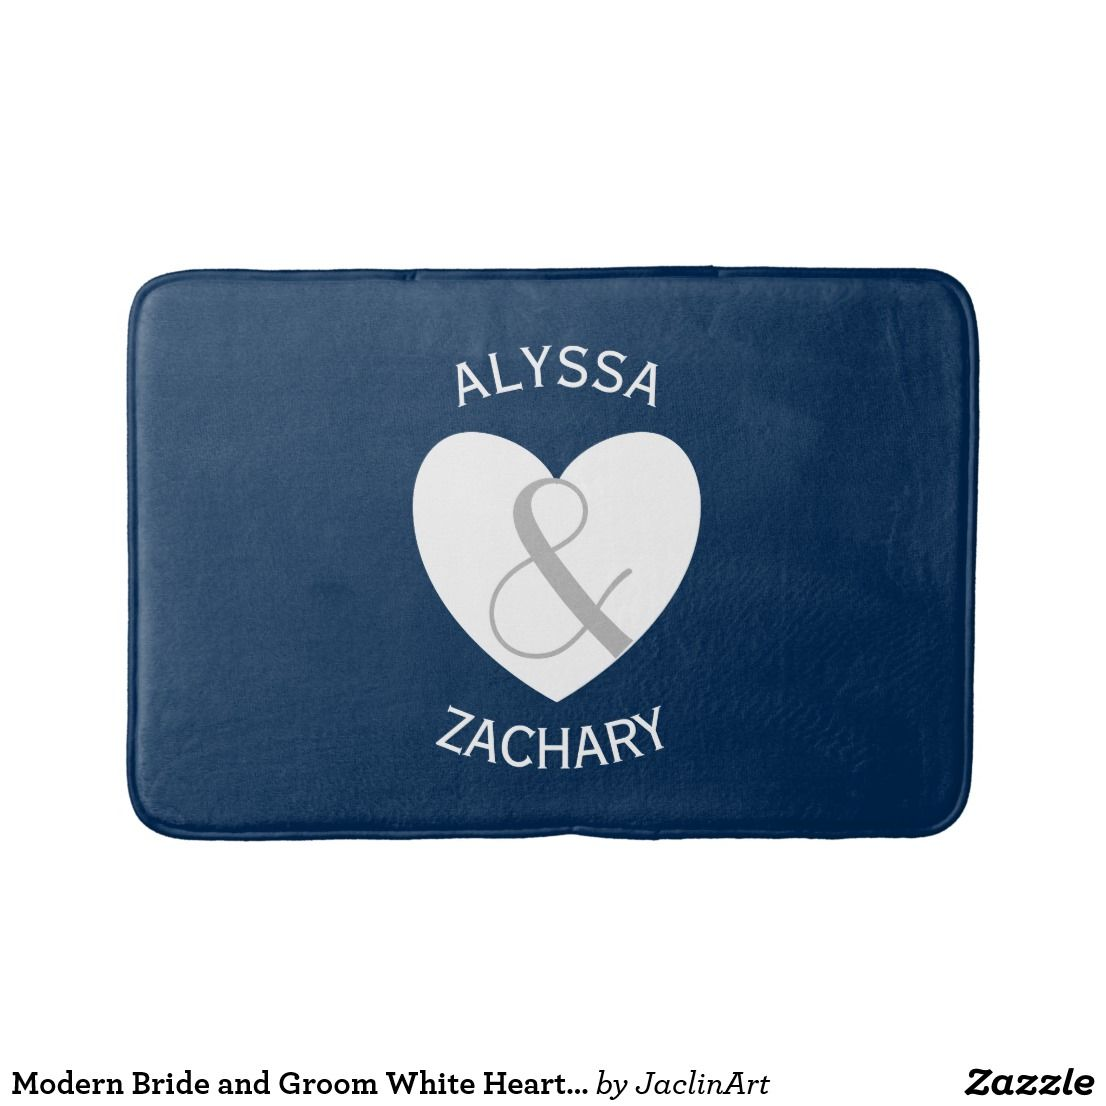 Modern Bride and Groom White Heart Curved Text A30 Bathroom Mat ...